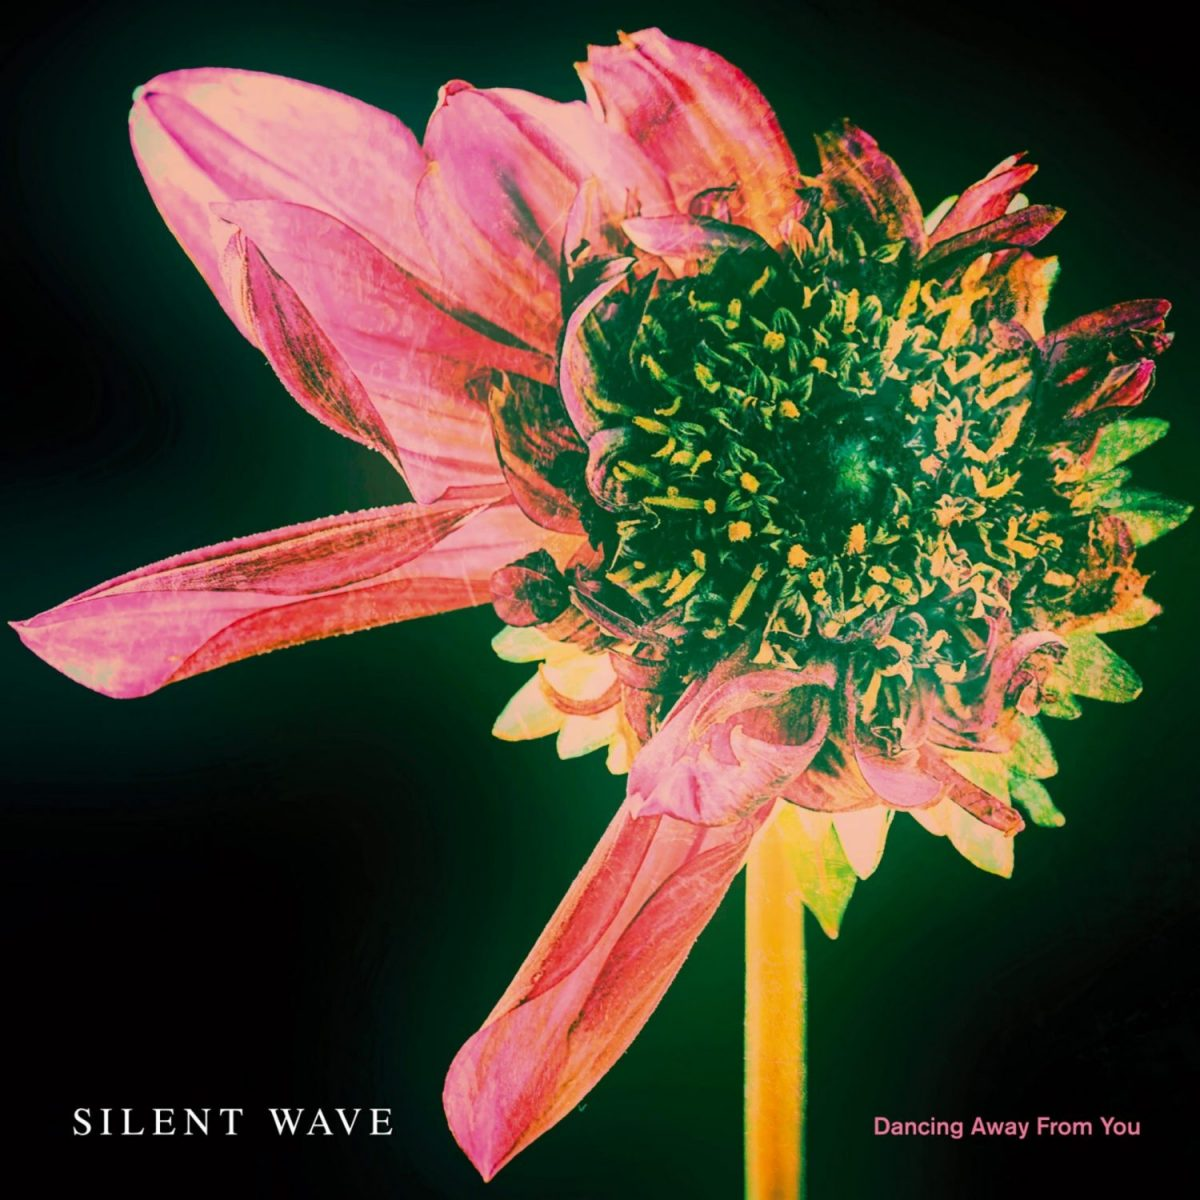 Silent Wave - Dancing Away From You (single cover)